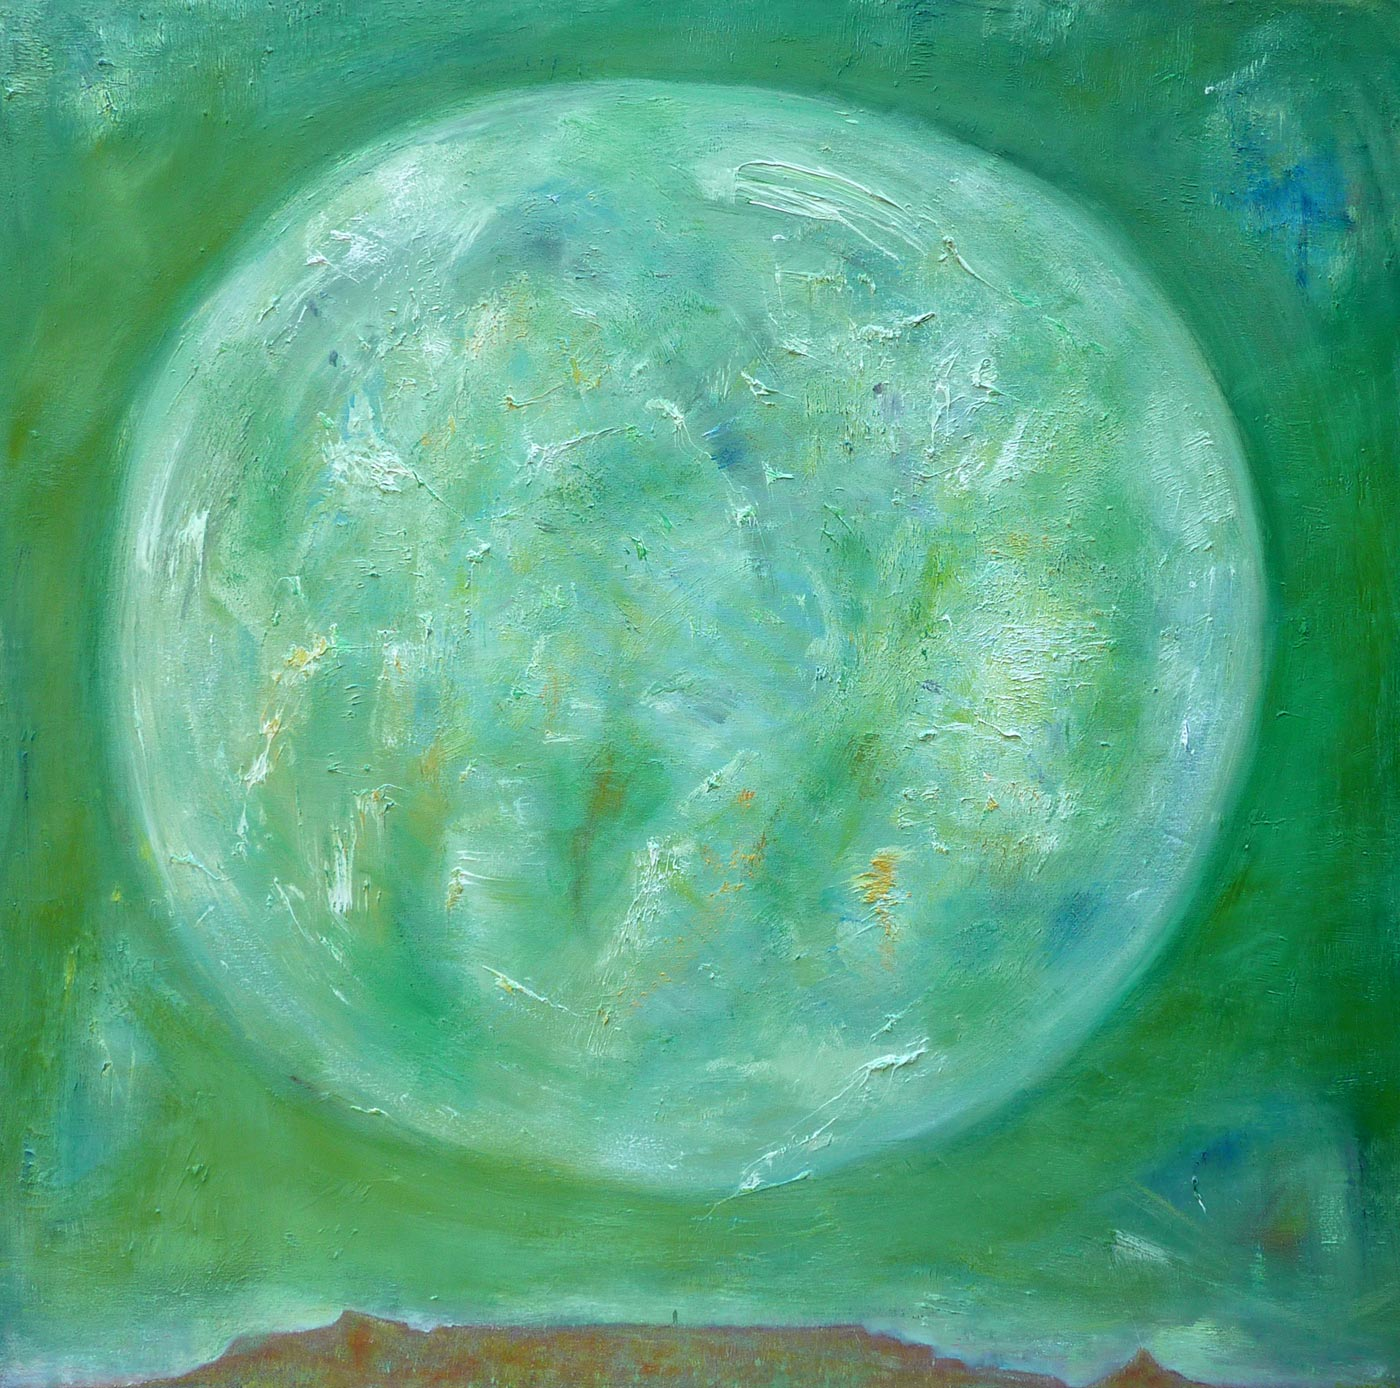 Portrait of the Moon (Cape Town) - Oil on Canvas 122cm x 122cm